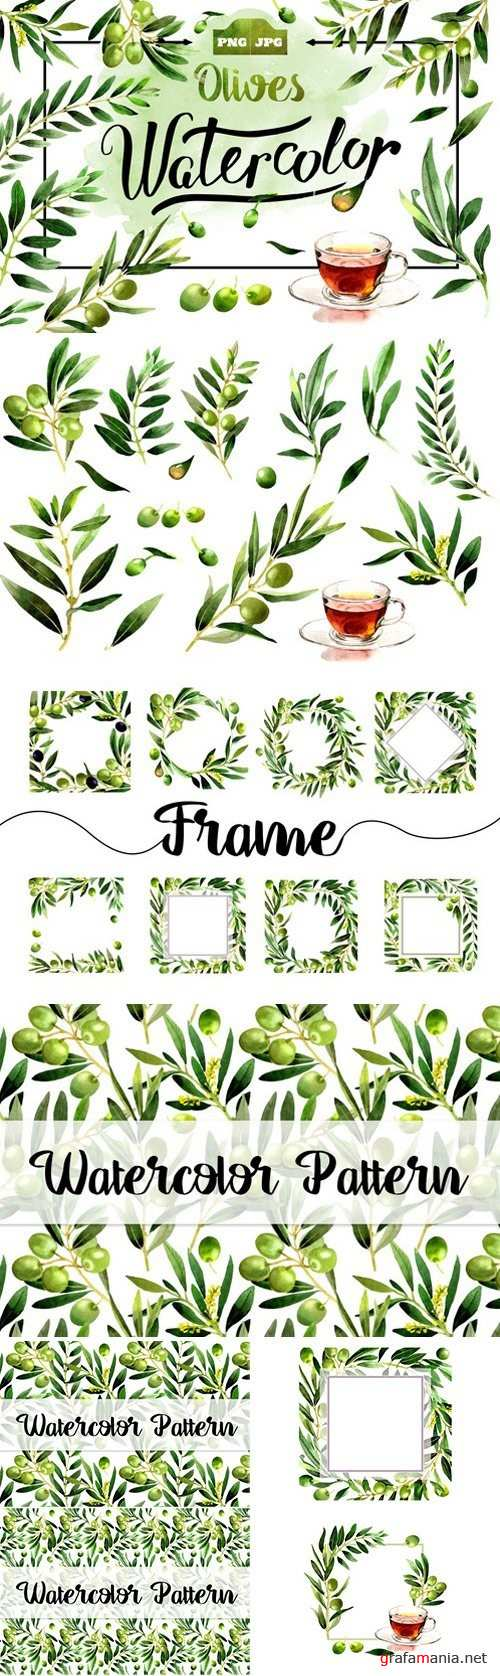 Olives watercolor PNG clipart - 1466479